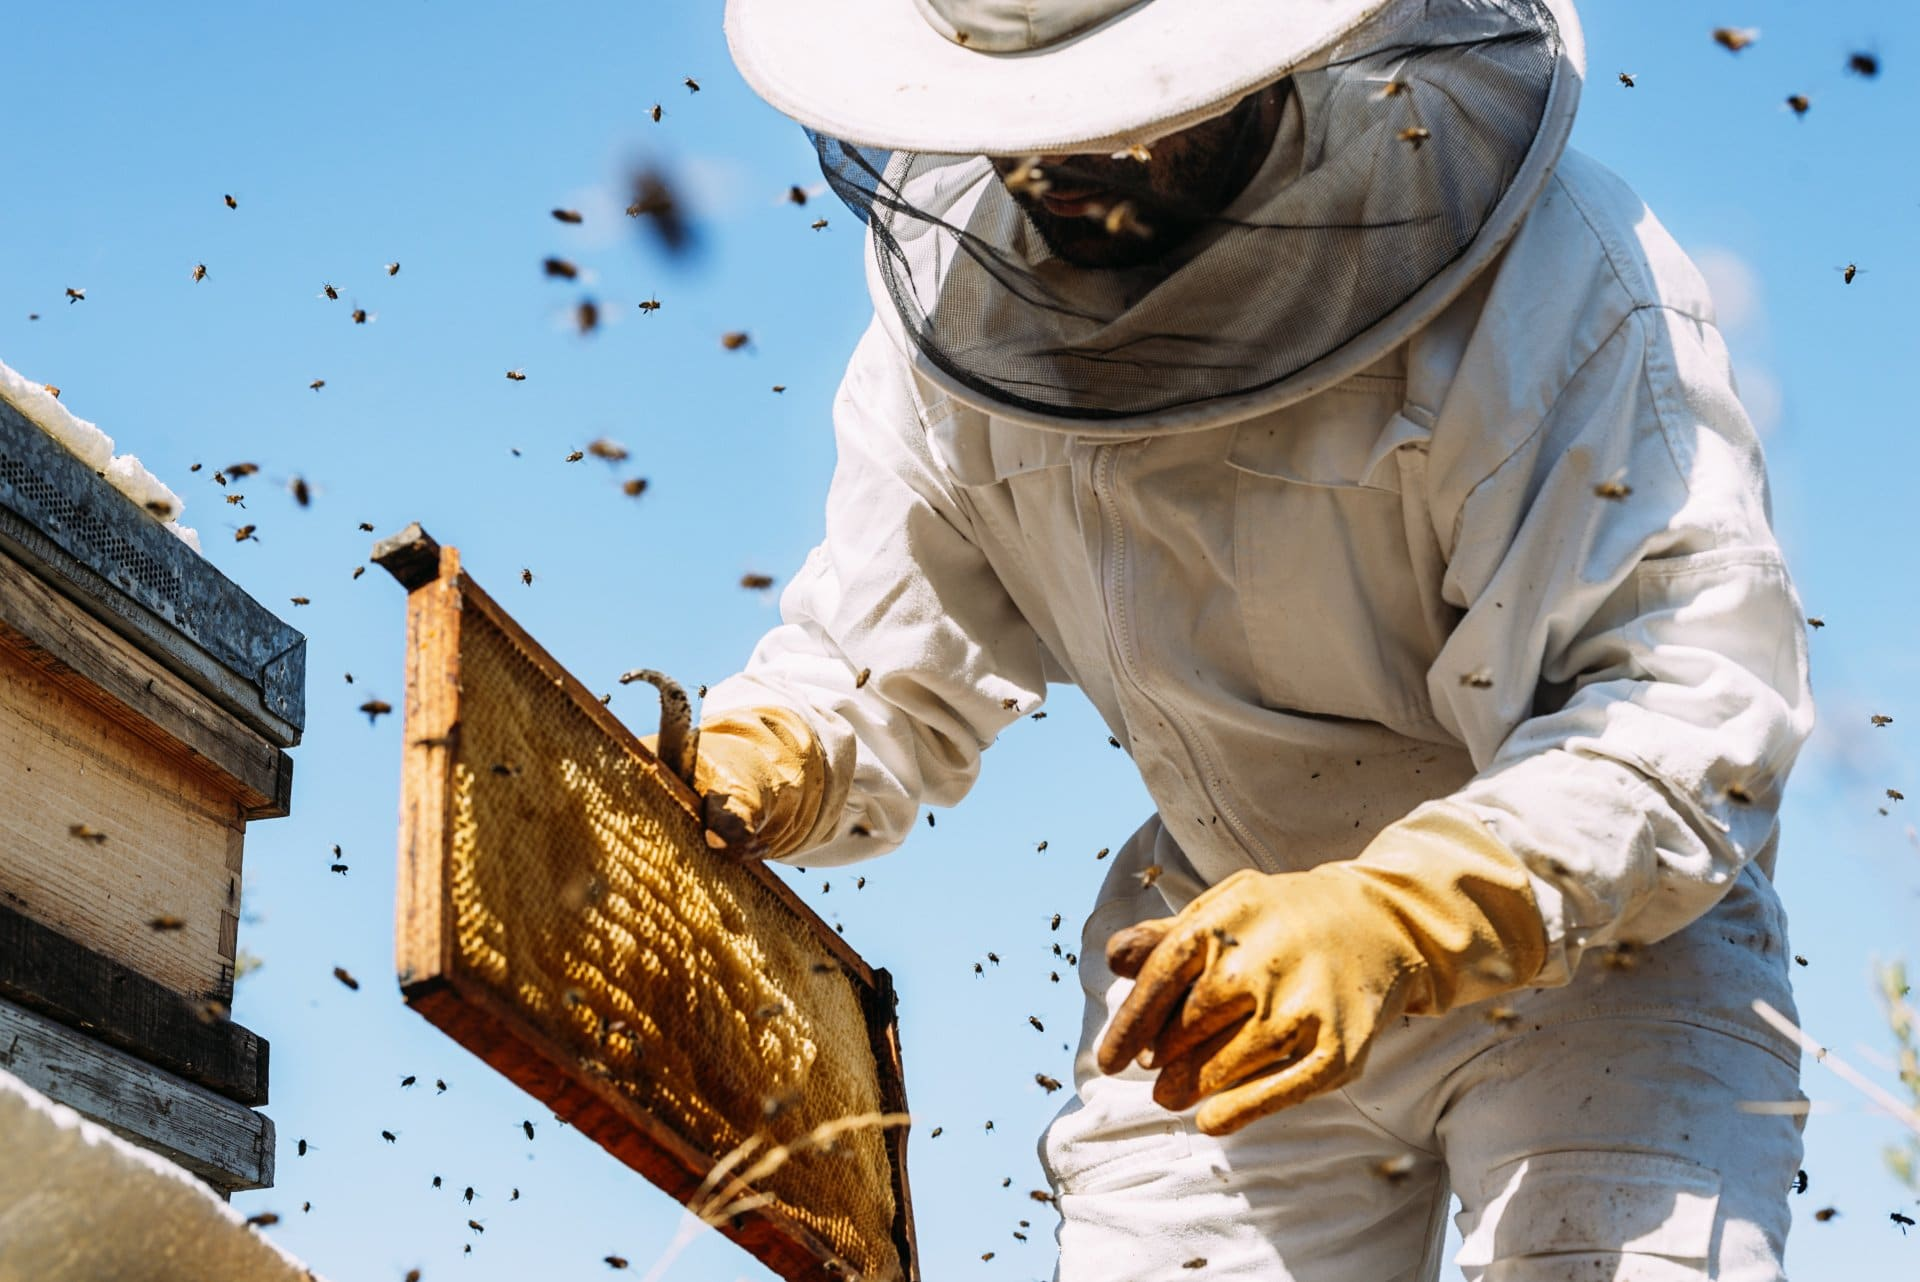 A beekeeper moving a bee colony.